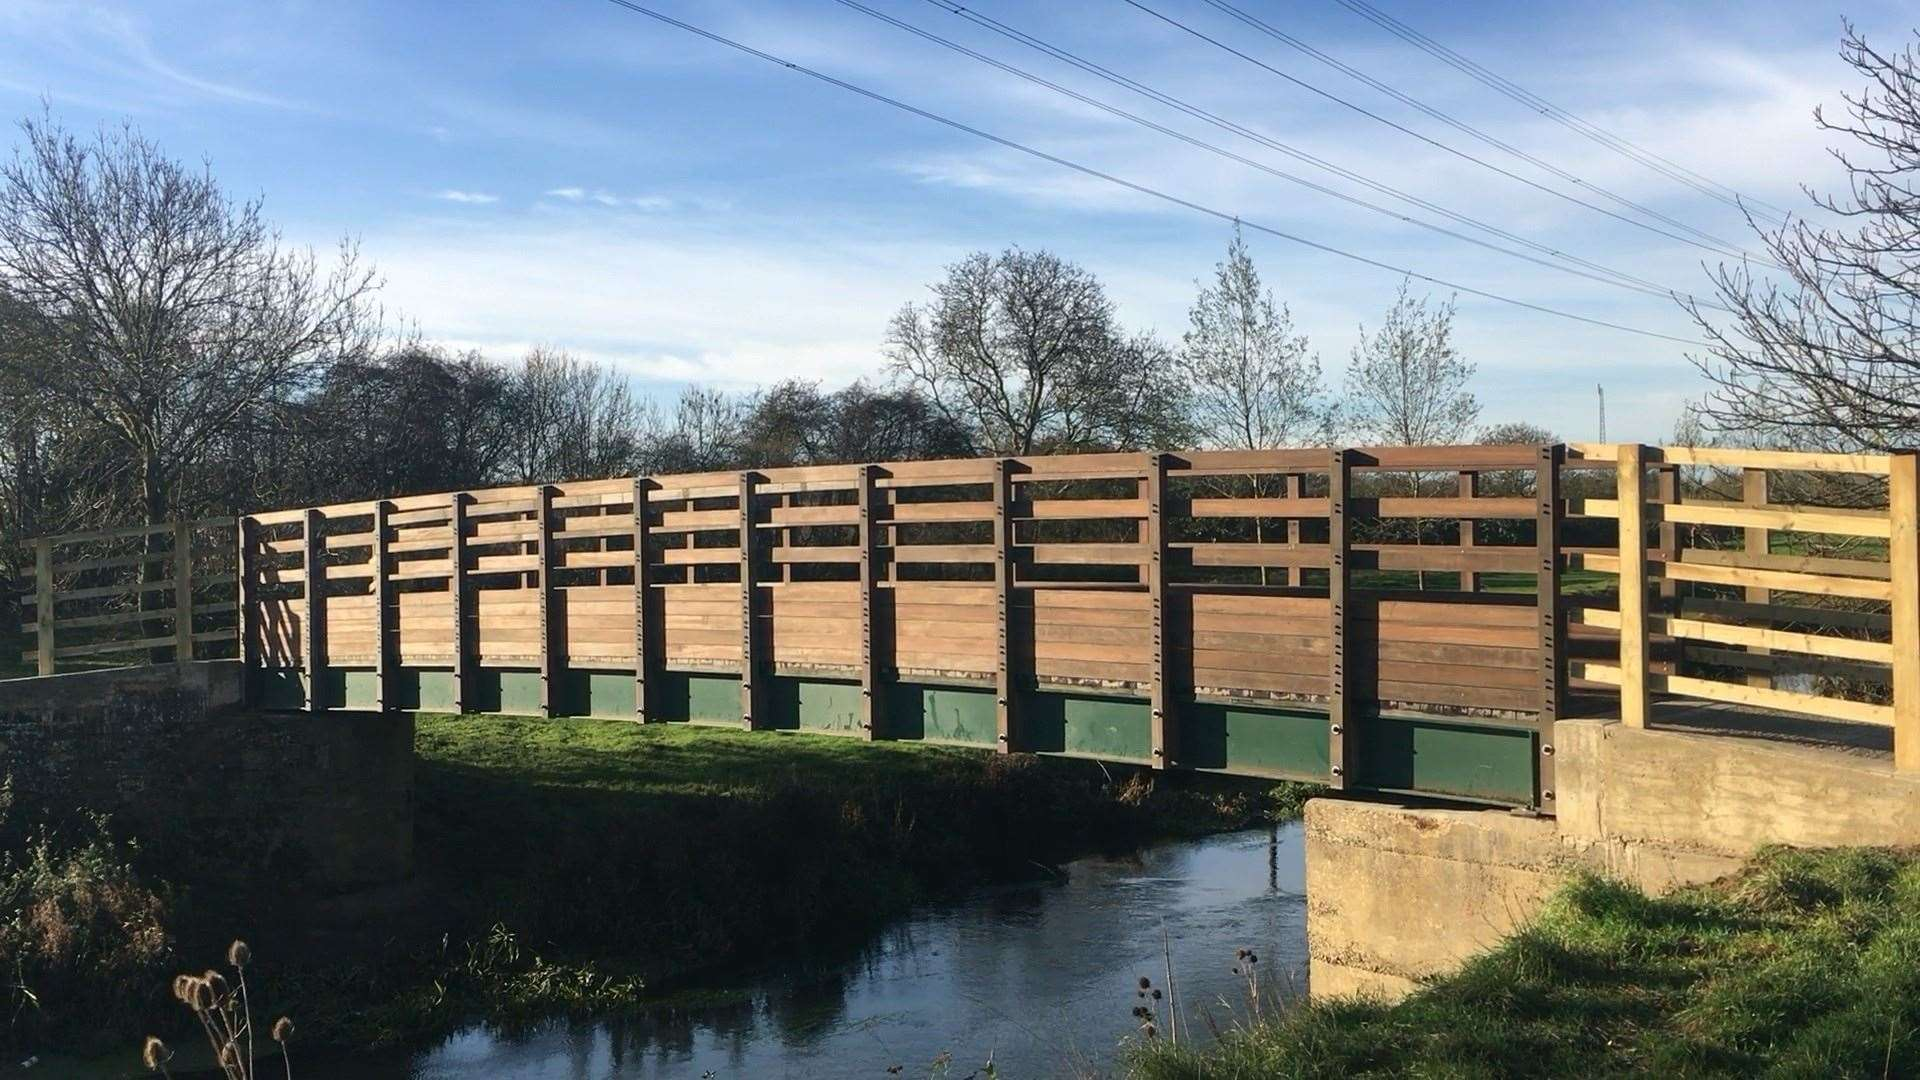 The new bridge over the River Welland at Hudd's Mill, Stamford. Photo: Richard Cleaver